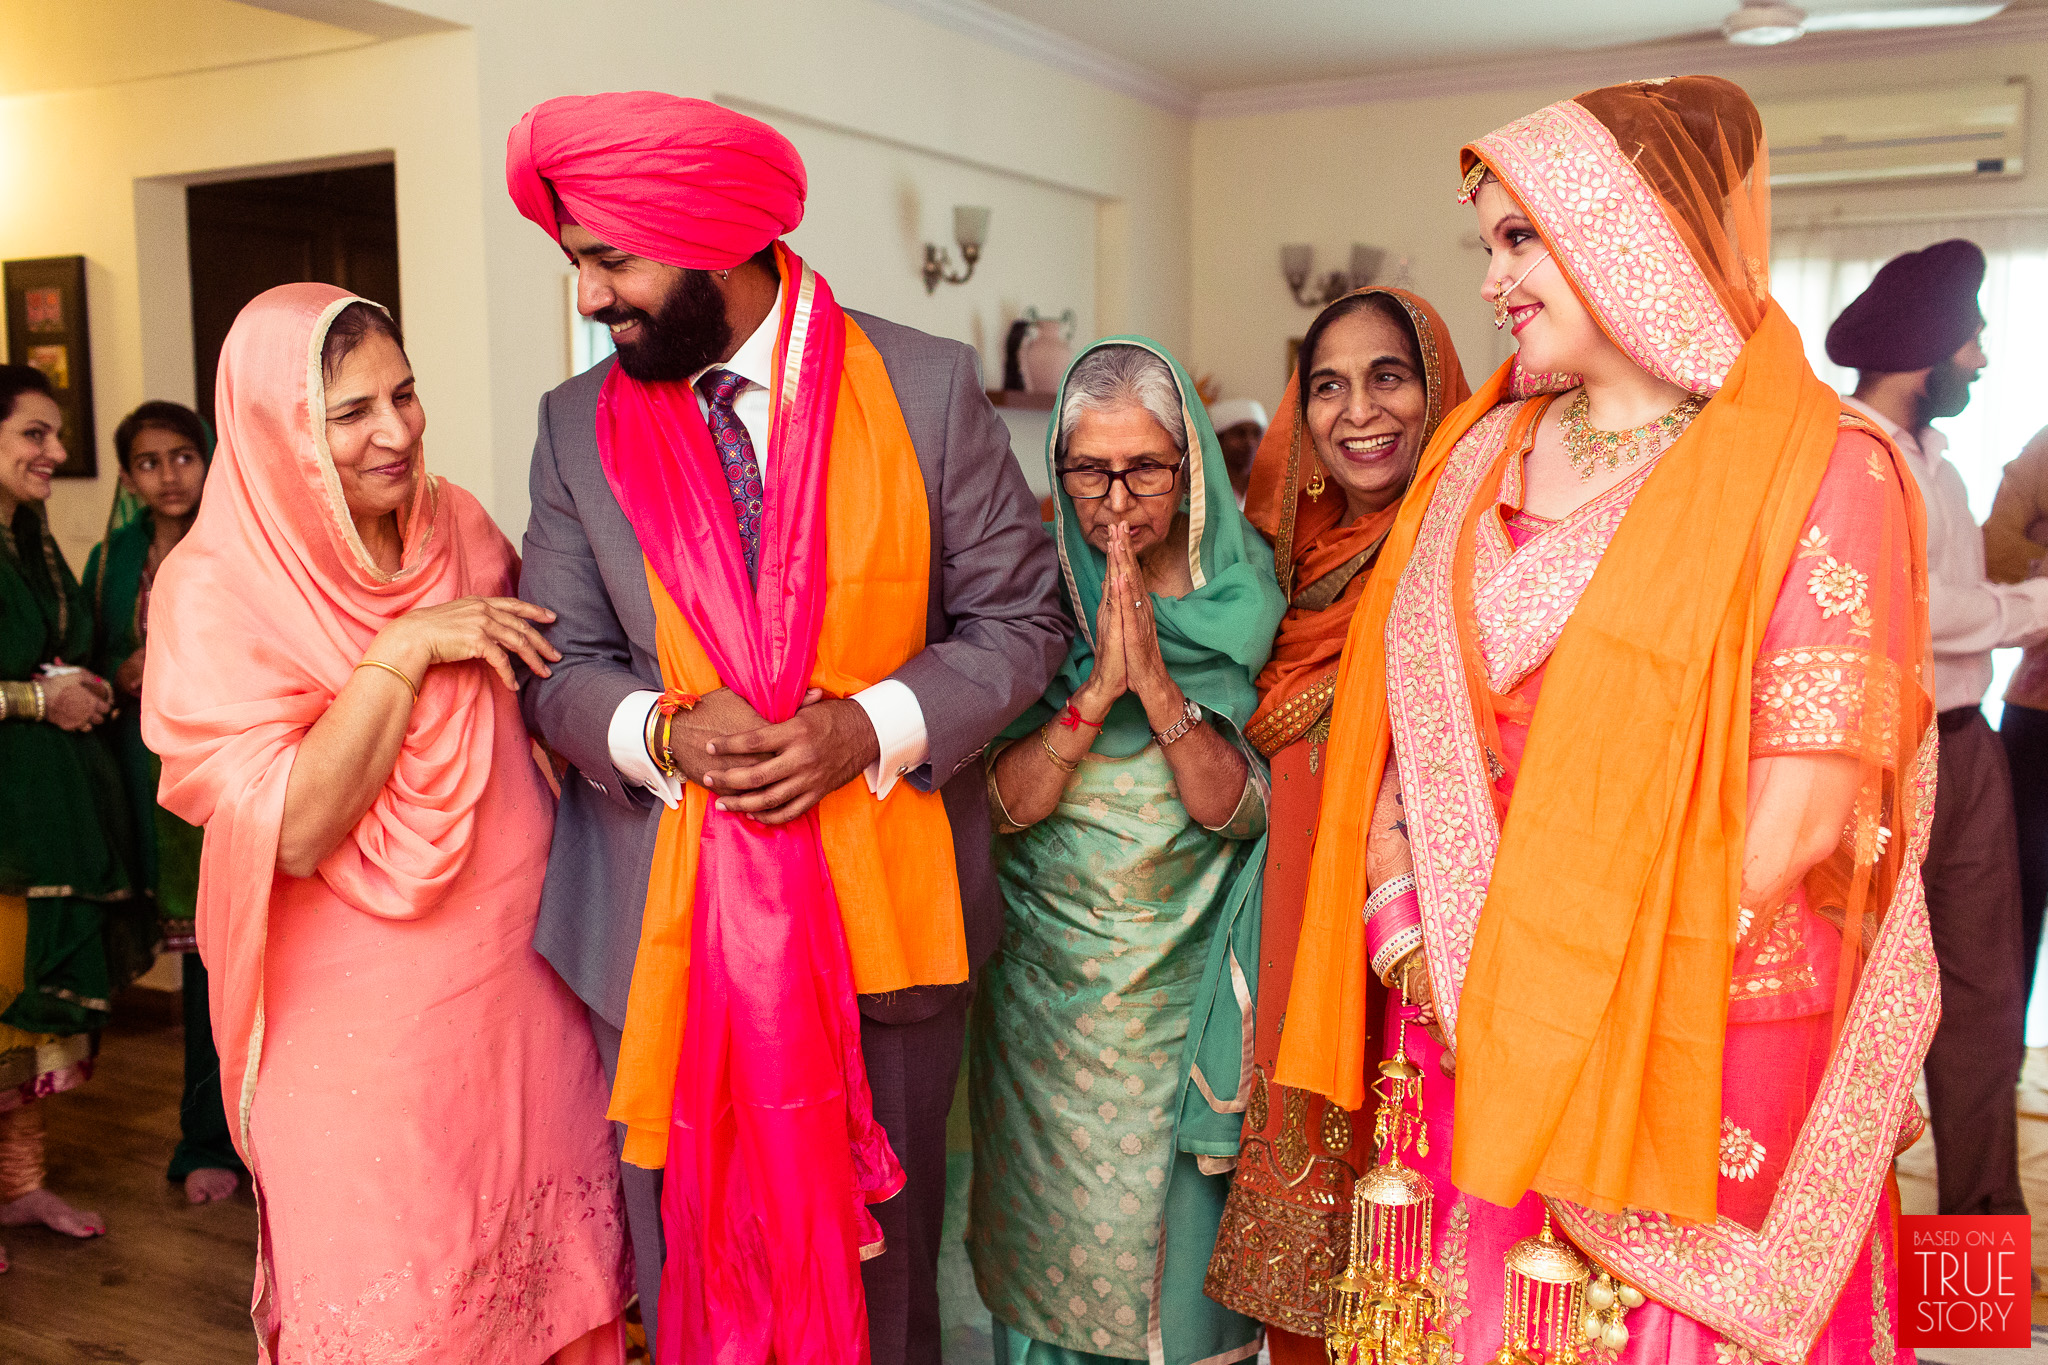 candid-photography-sikh-wedding-bangalore-0024.jpg